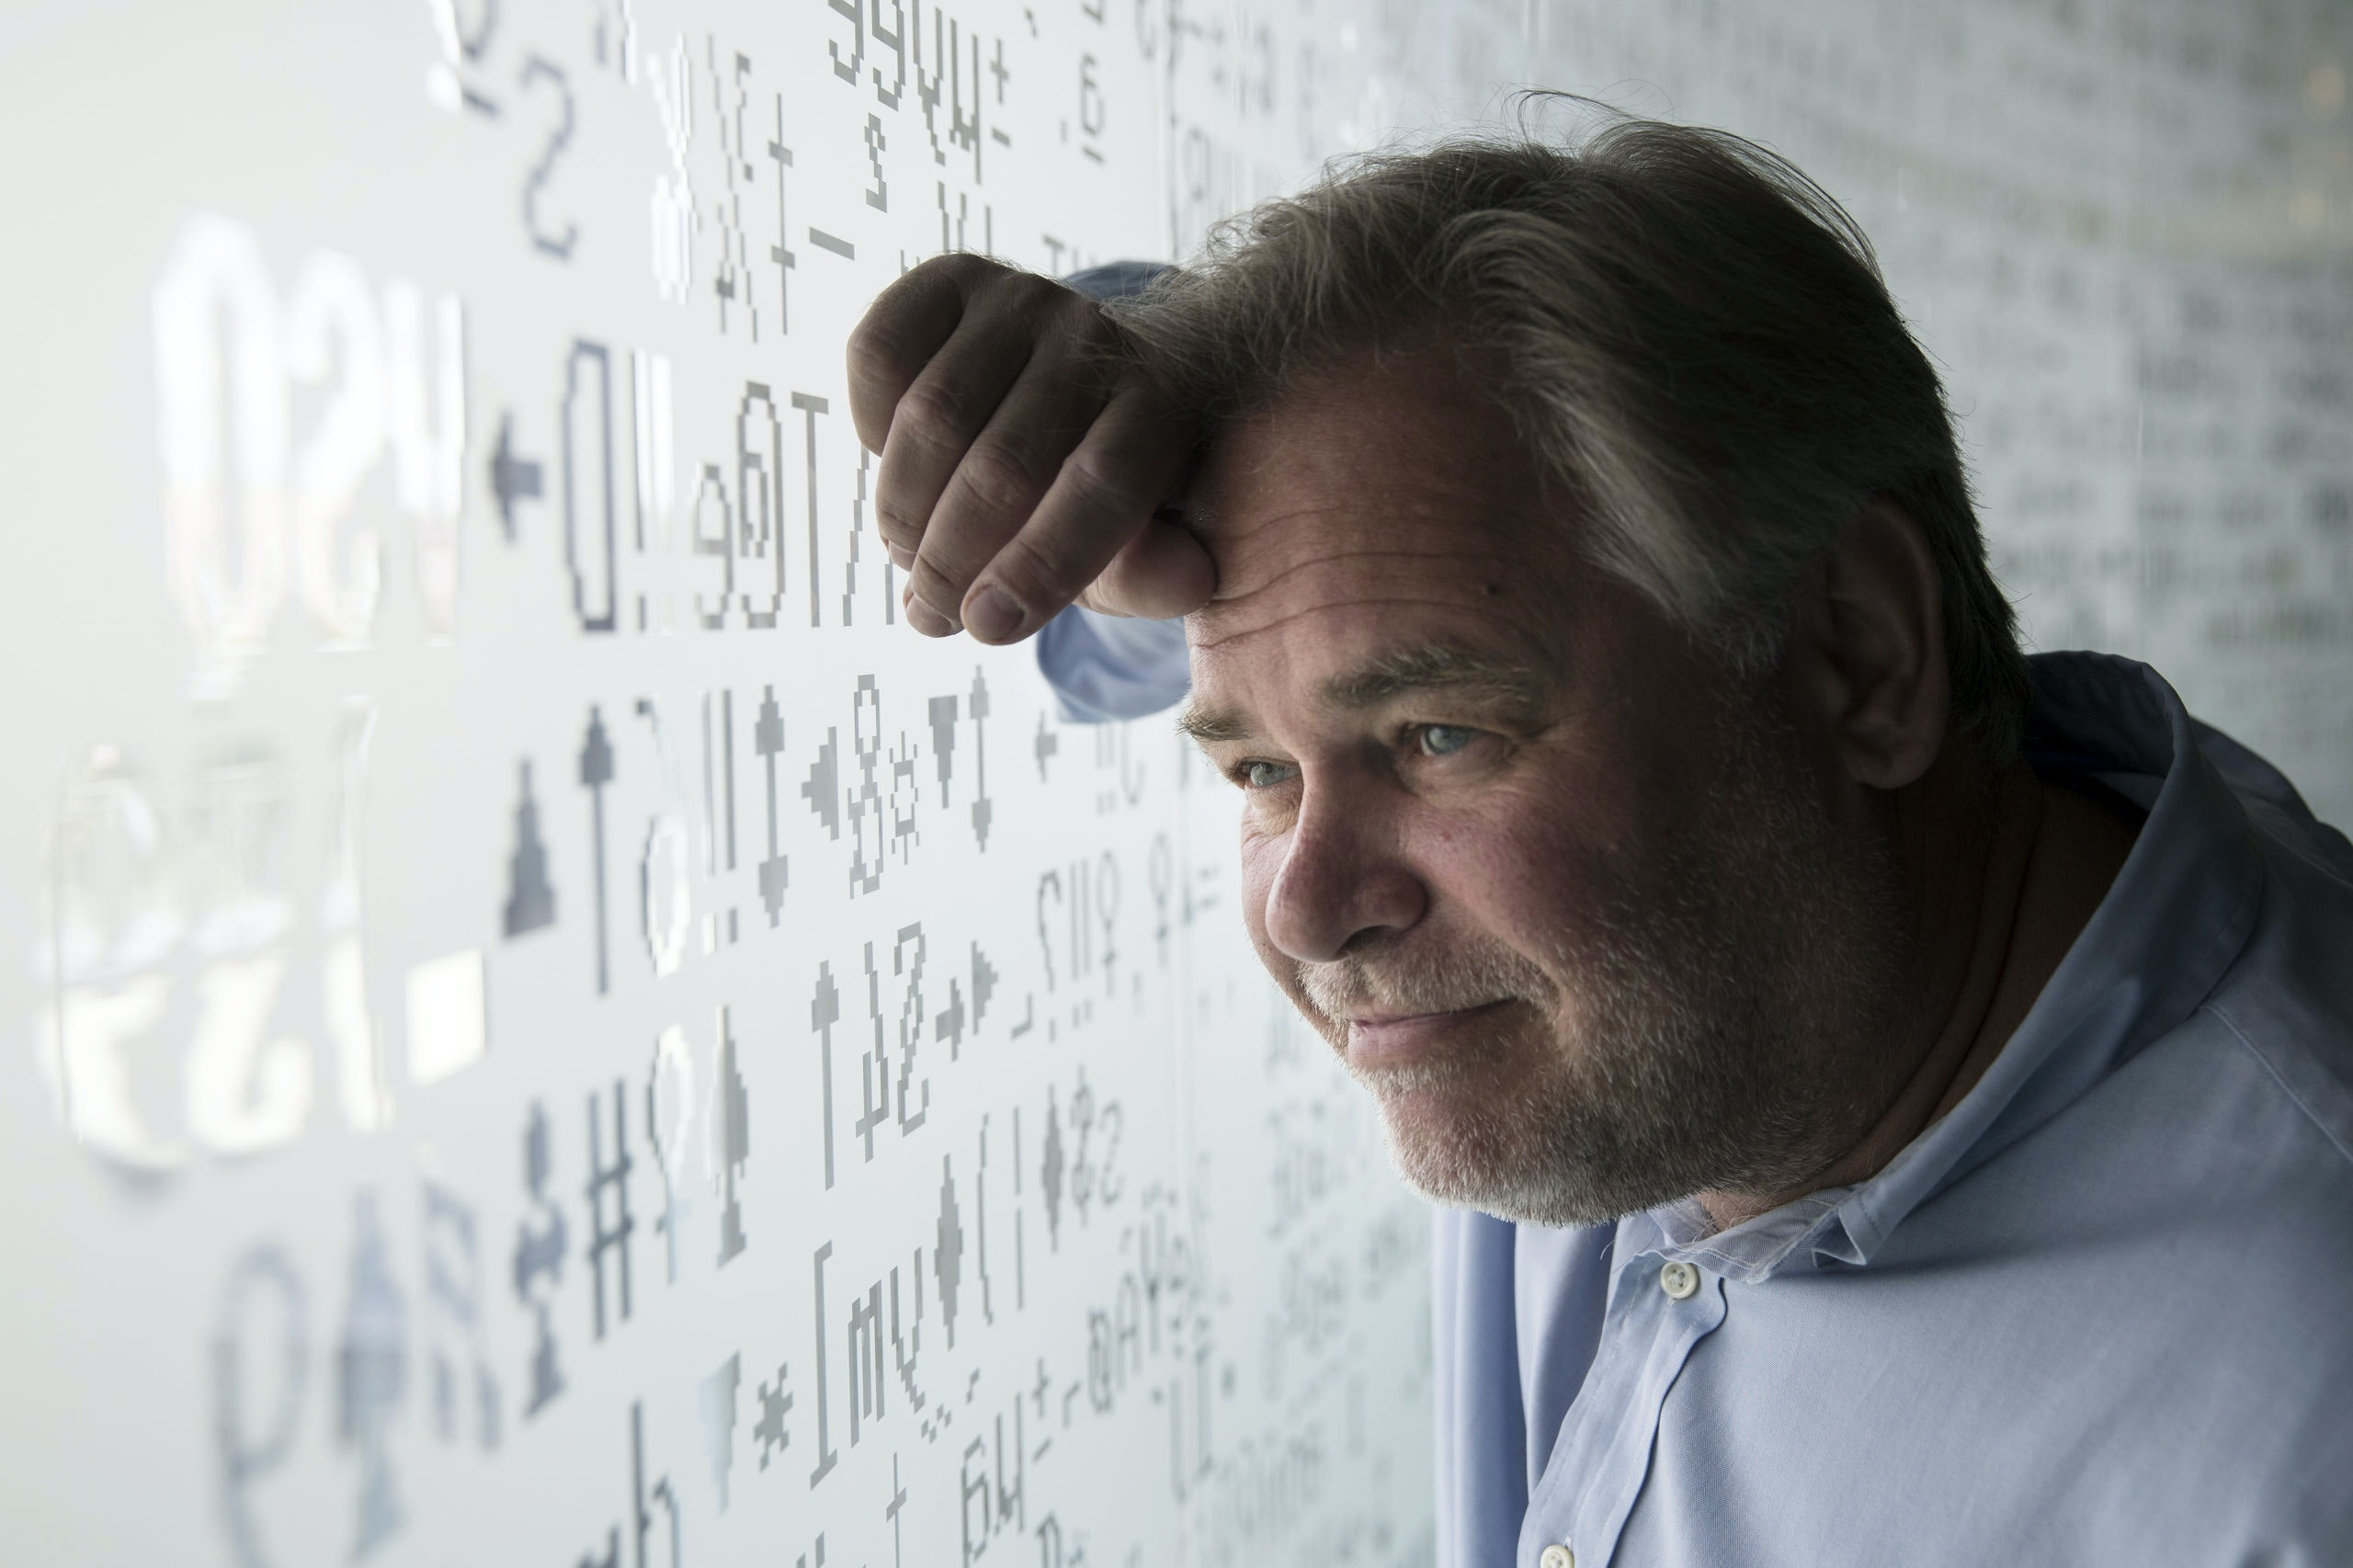 Eugene Kaspersky, Russian antivirus programs developer and chief executive of Russia's Kaspersky Lab, watches trough a window decorated with programming code's symbols at his company's headquarters in Moscow, Russia, Saturday, July 1, 2017. Kaspersky says he's ready to have his company's source code examined by U.S. government officials to help dispel long-lingering suspicions about his company's ties to the Kremlin. (AP Photo/Pavel Golovkin)